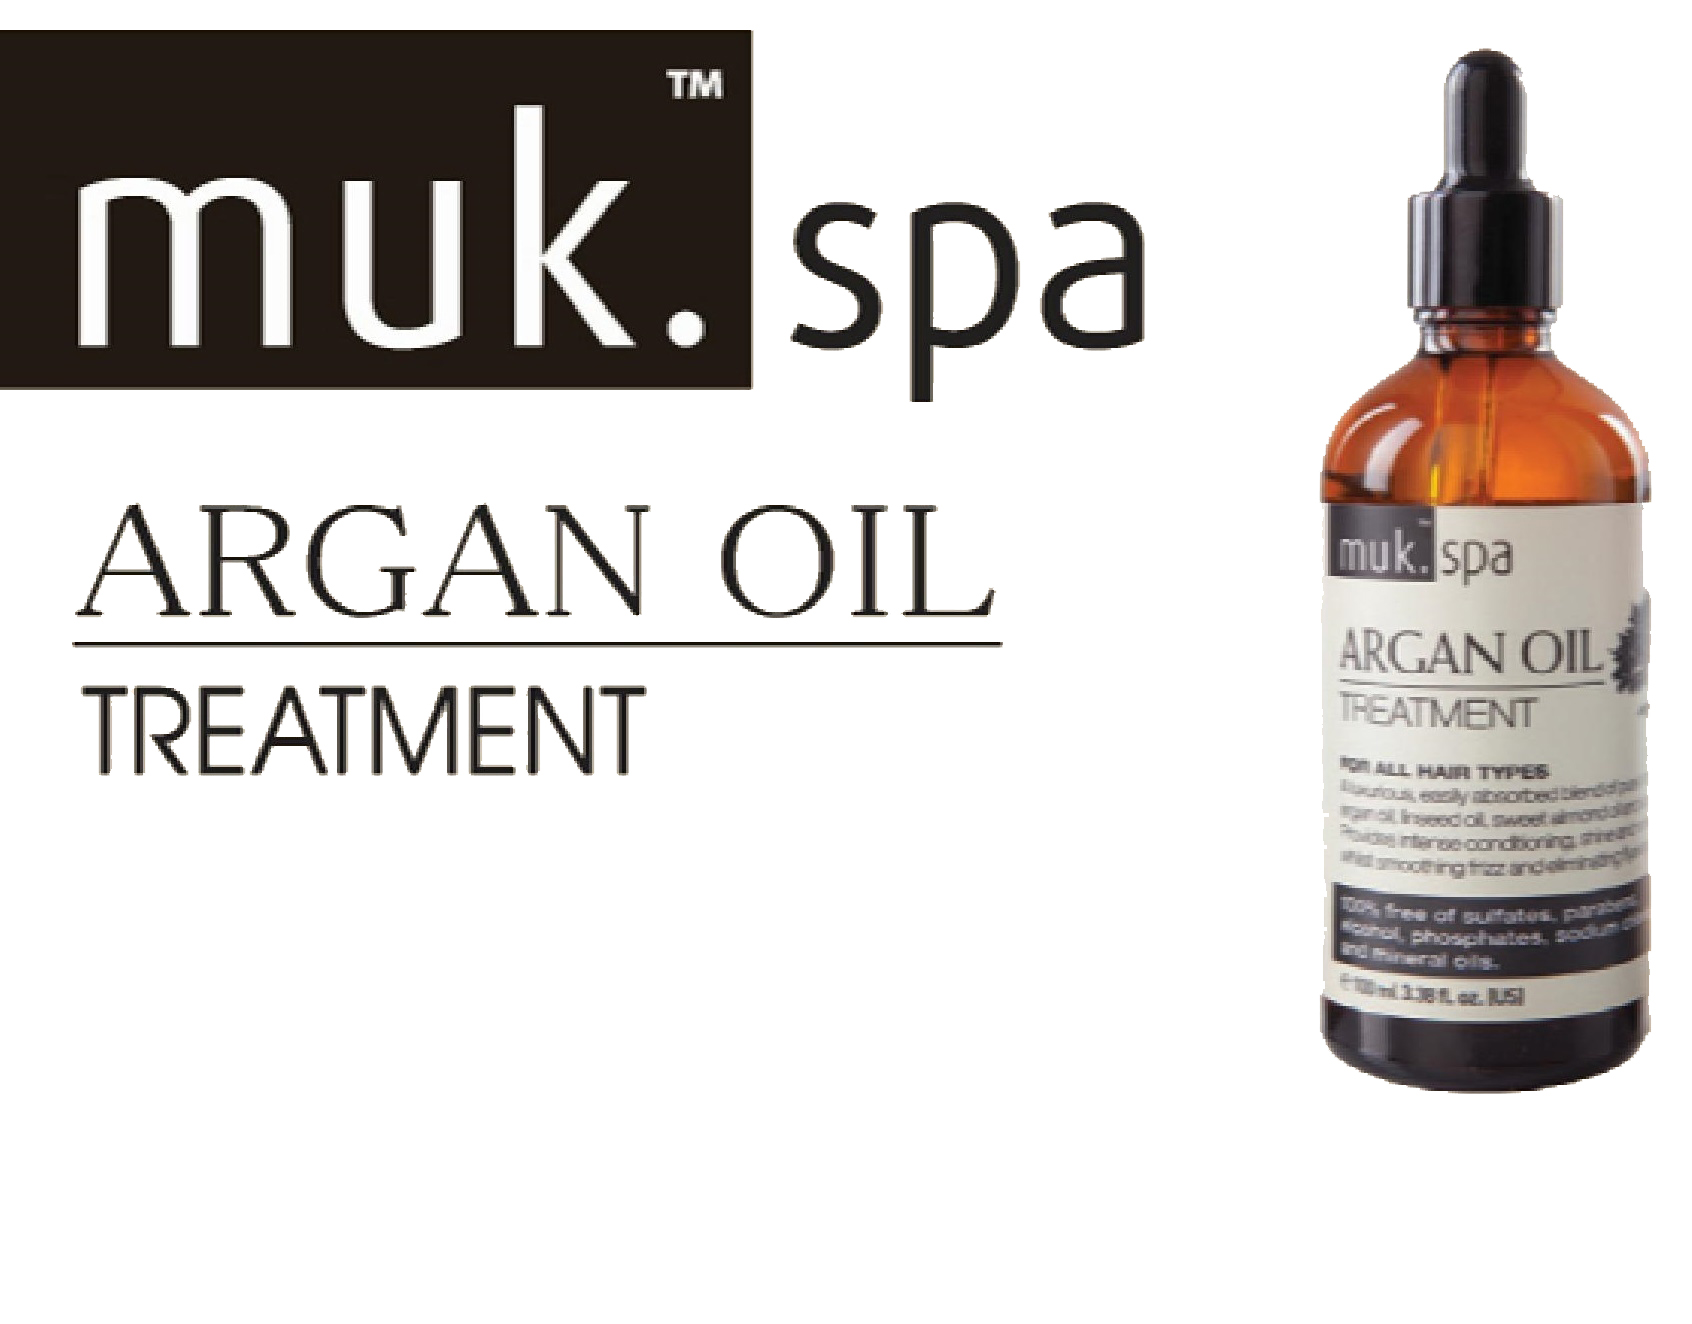 argan-oild-treatment